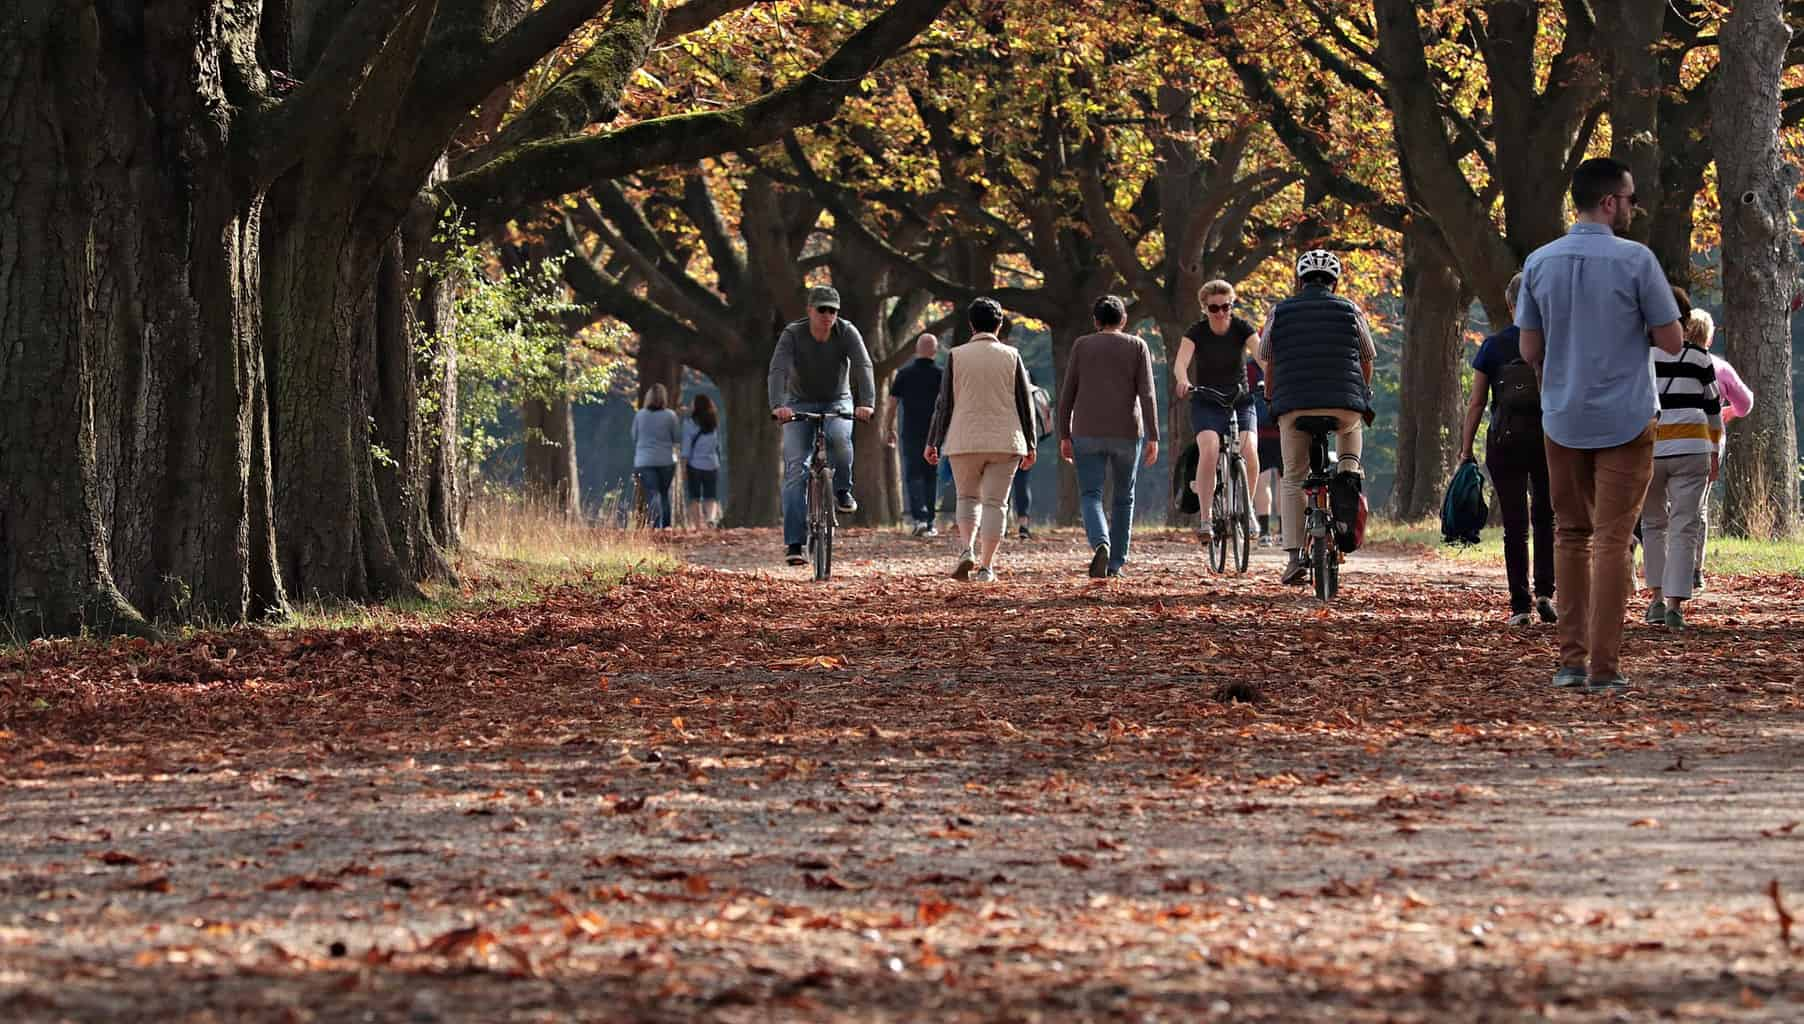 People walking and cycling under trees with autumn leaves around